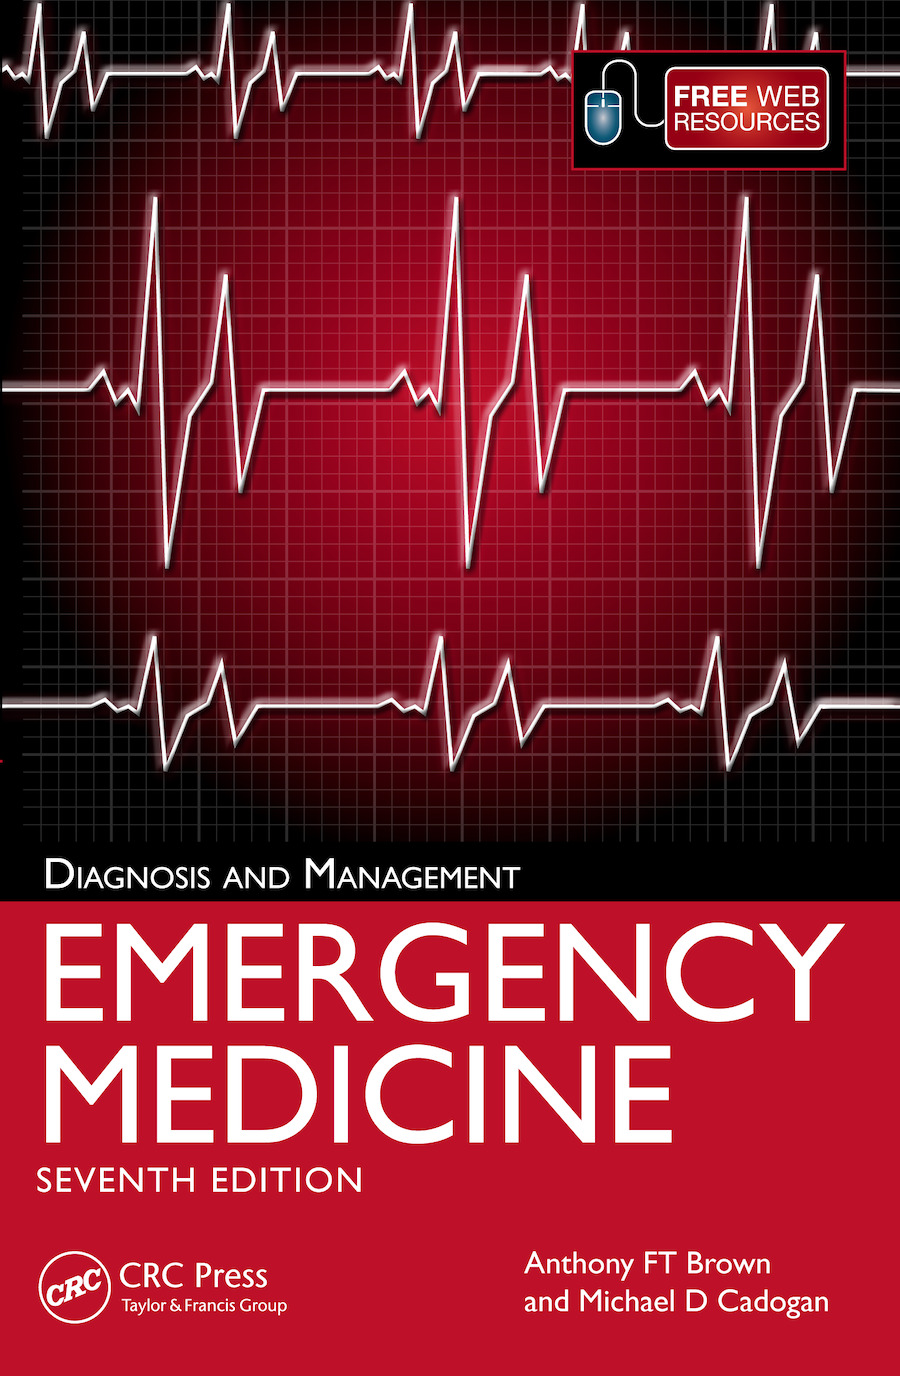 Emergency Medicine: Diagnosis and Management, 7th Edition book cover